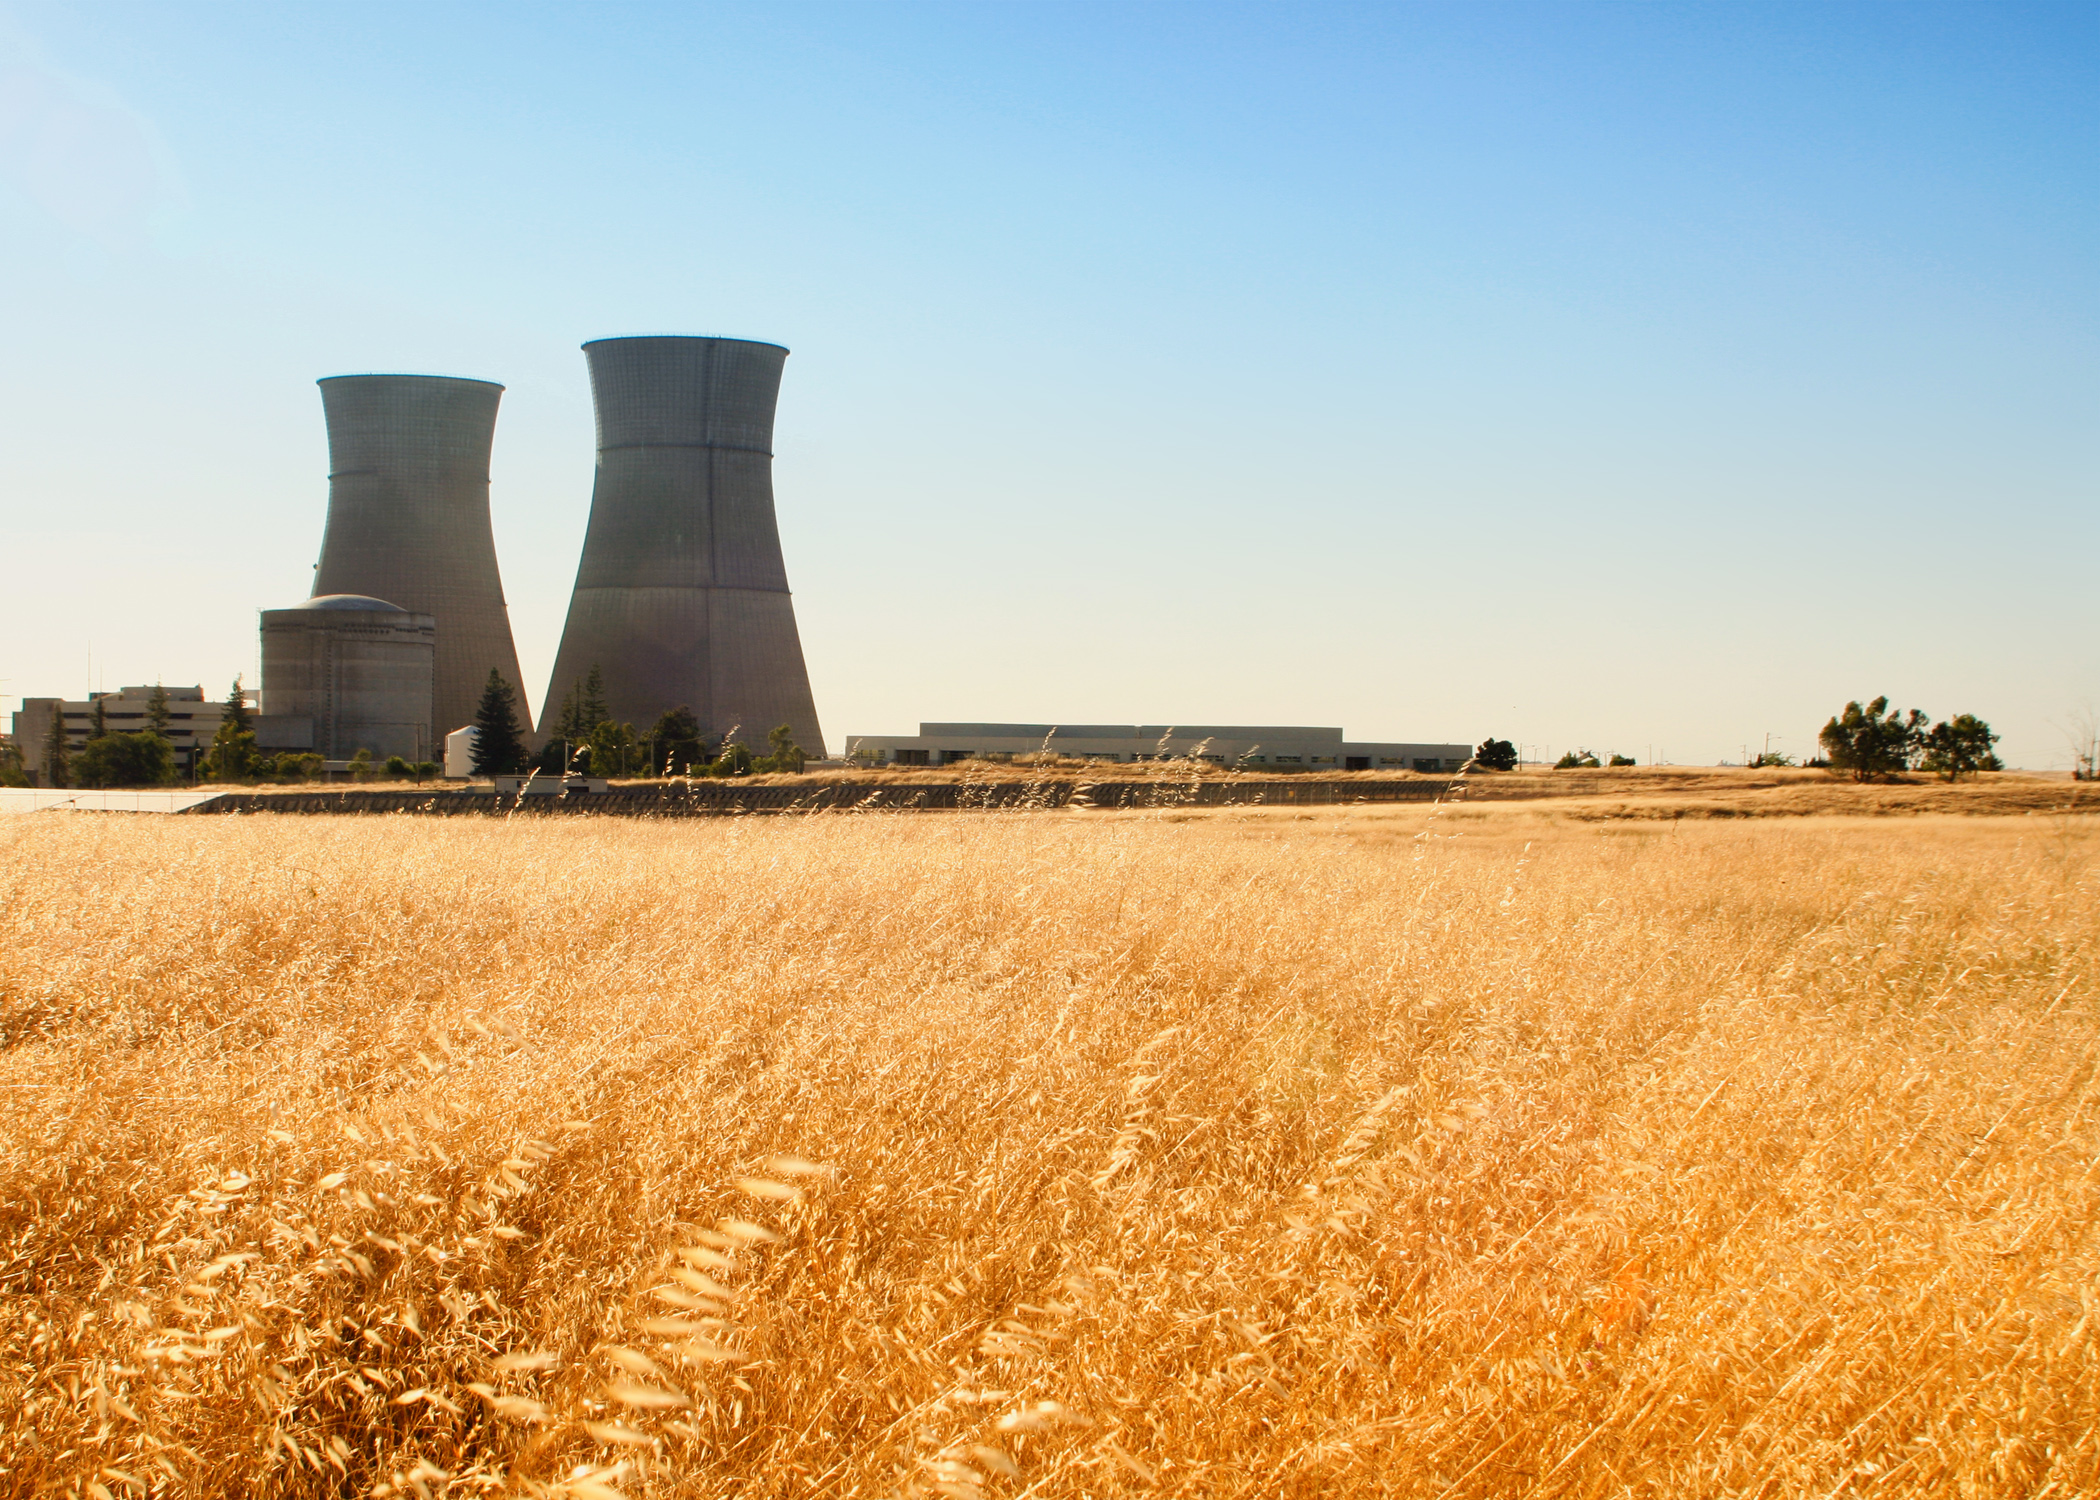 rancho-seco-nuclear-power-plant-1-1395317